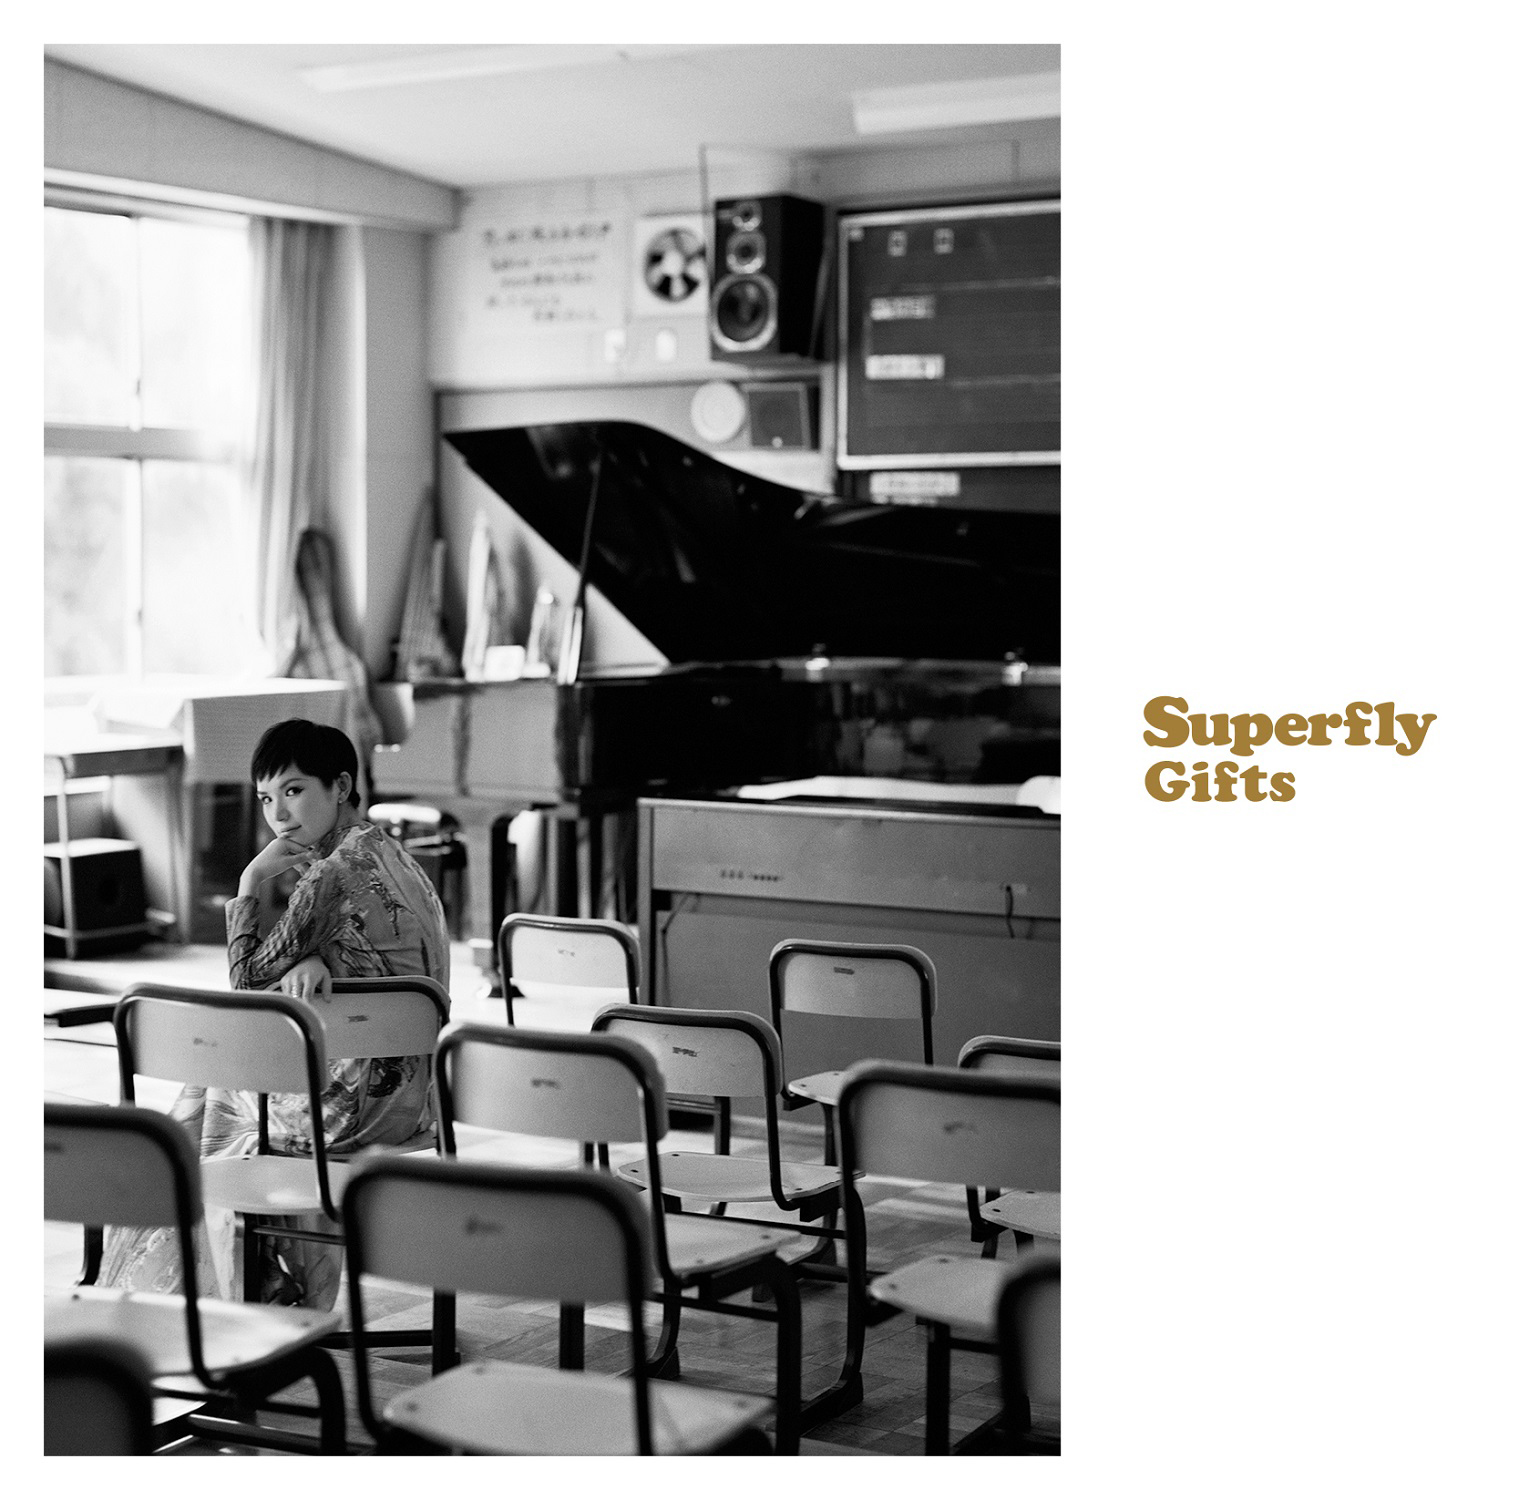 Superfly 24th Single 『Gifts』通常盤